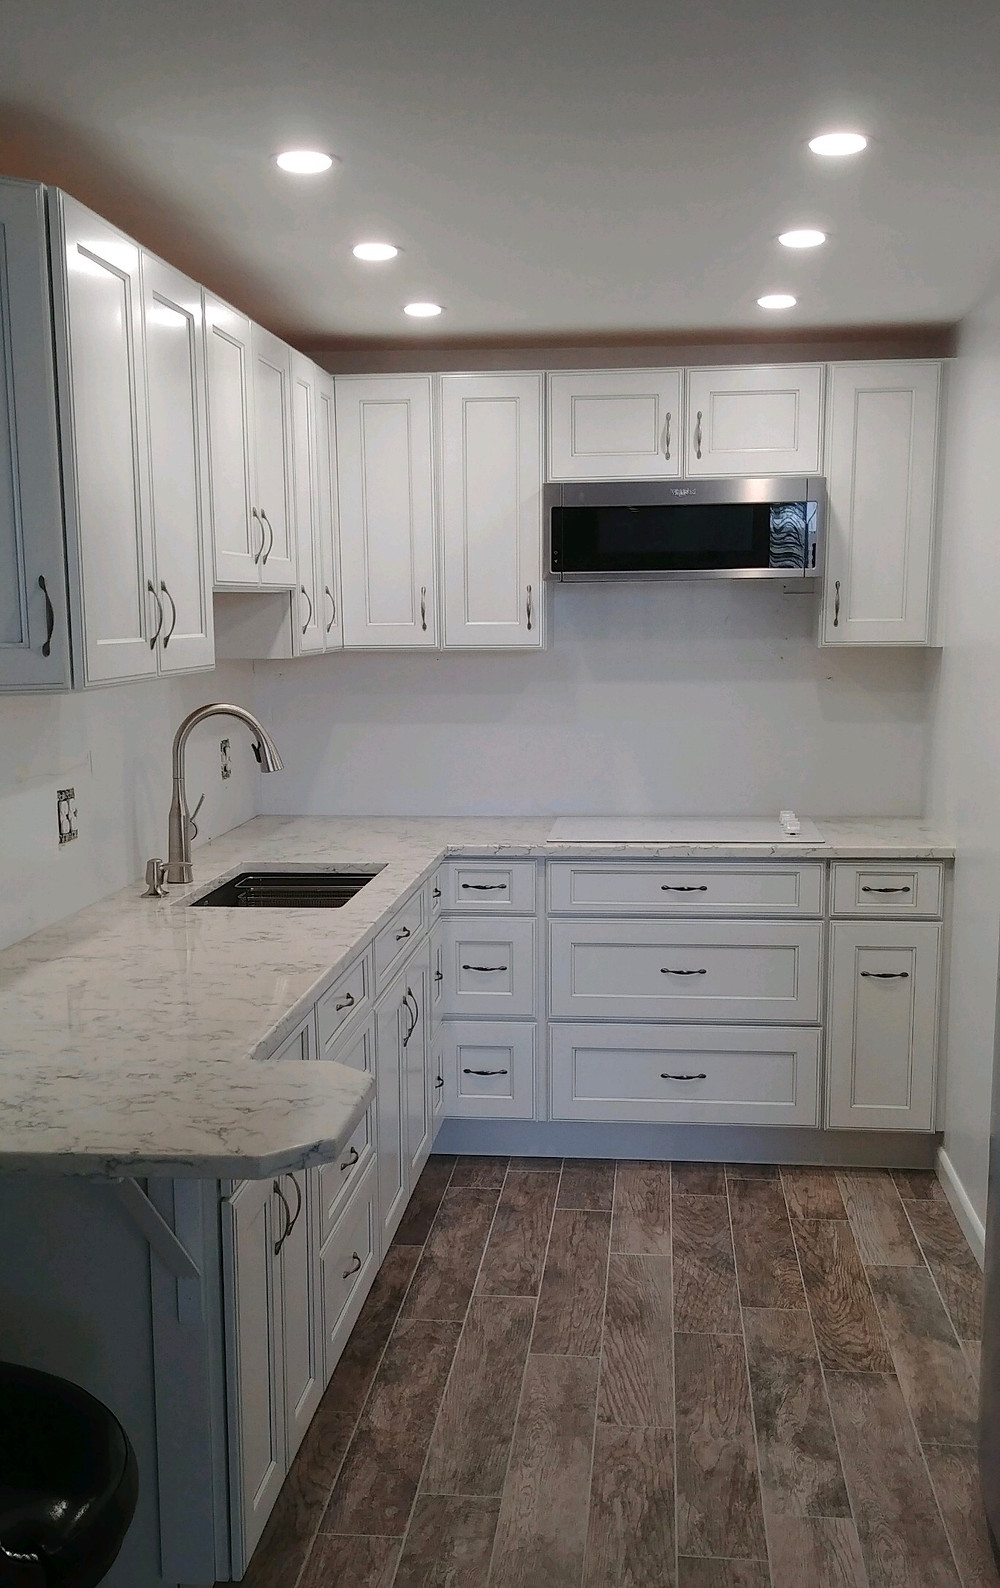 white quartz countertops installer near me Boca Raton FL feel free to contact Stone and Quartz LLC